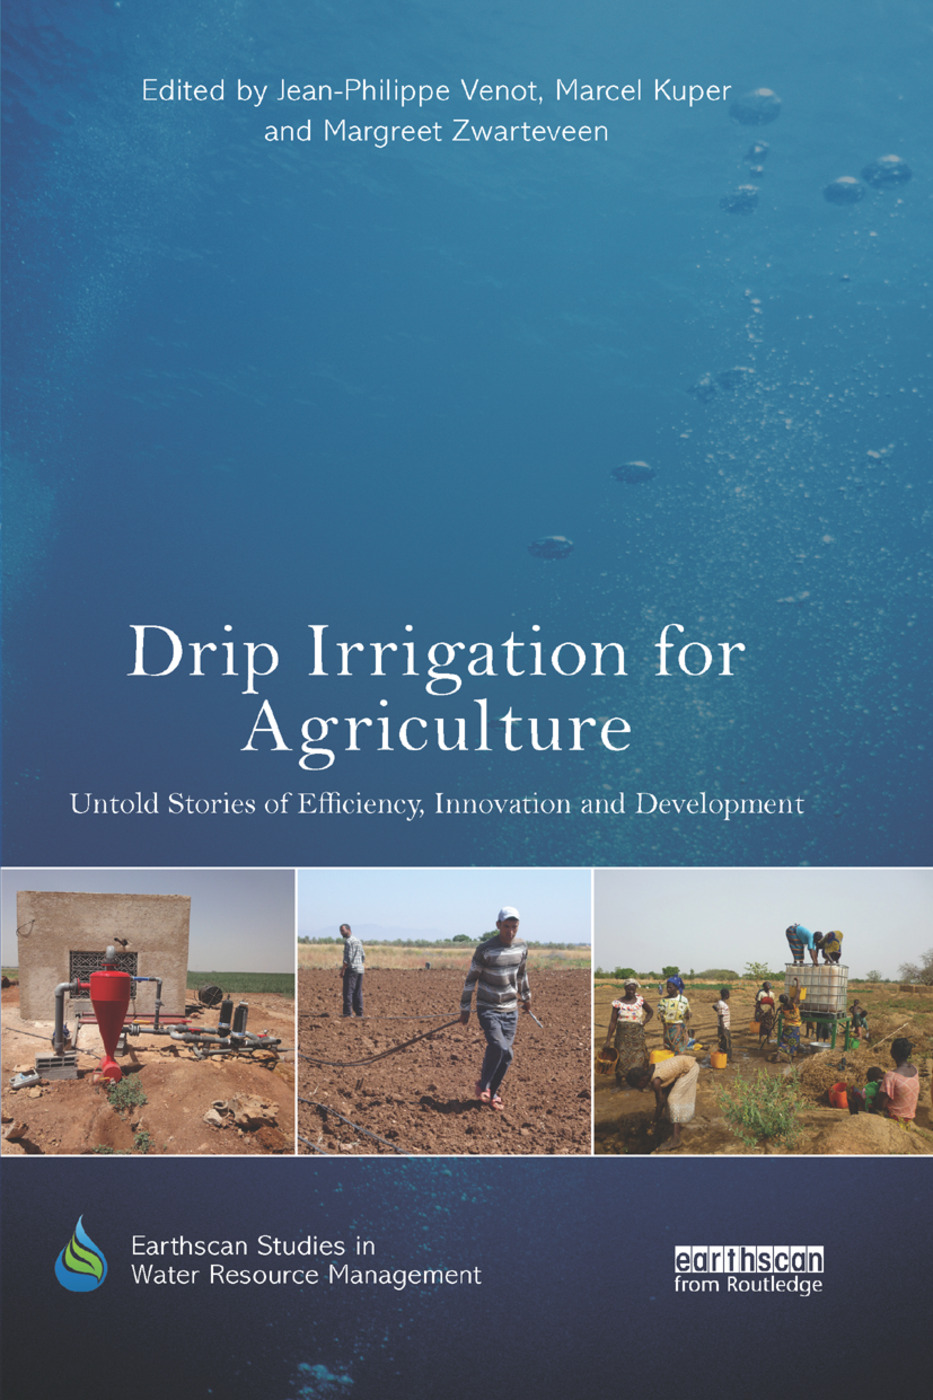 Drip Irrigation for Agriculture: Untold Stories of Efficiency, Innovation and Development book cover